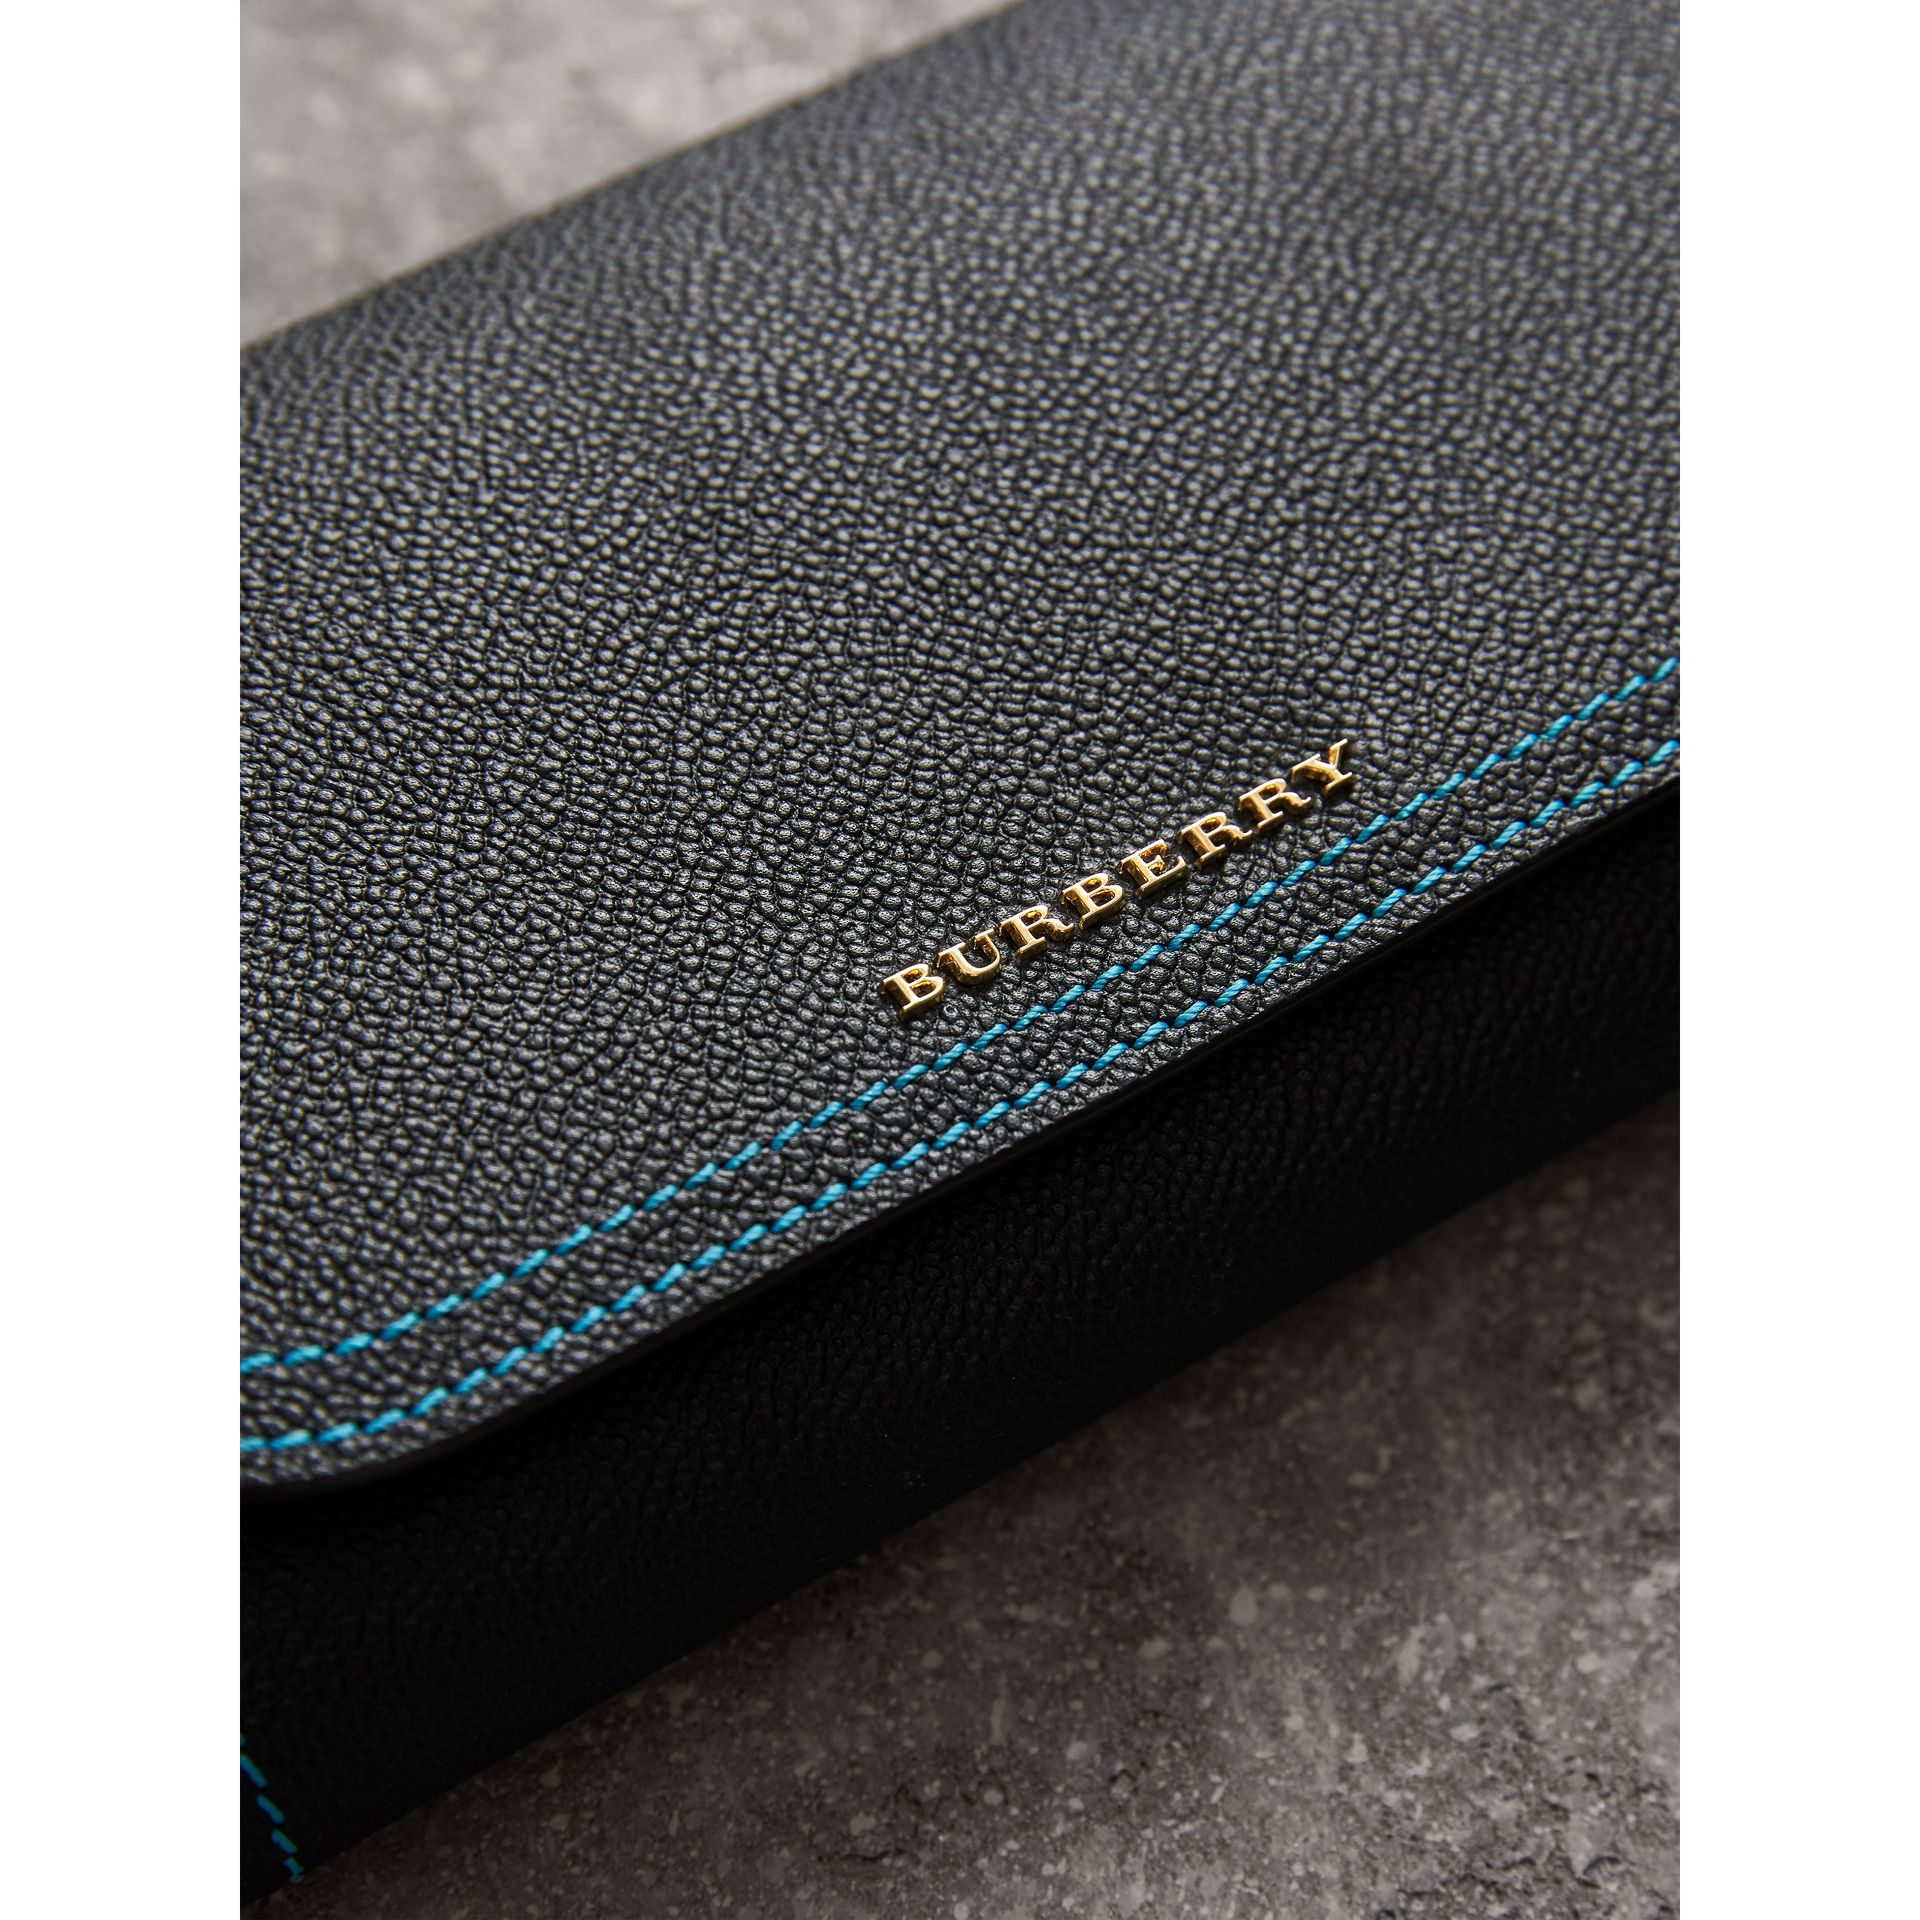 Topstitch Detail Leather Wallet with Detachable Strap in Black/multicolour - Women | Burberry Singapore - gallery image 1